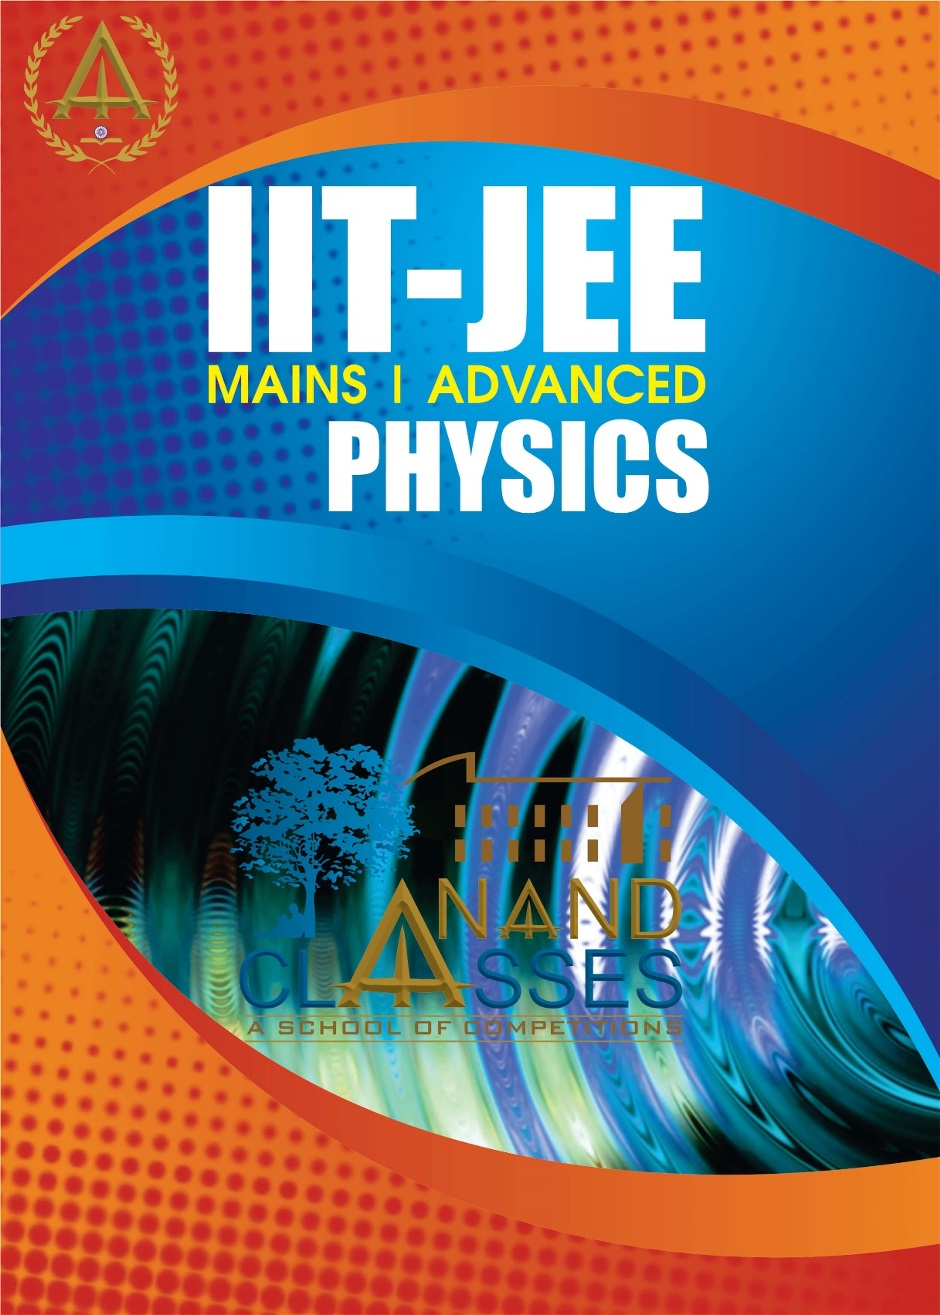 CALL 9463138669, ANAND CLASSES – BEST ONLINE IIT-JEE MAIN ENTRANCE EXAM COACHING CENTER IN JALANDHAR, PUNJAB.